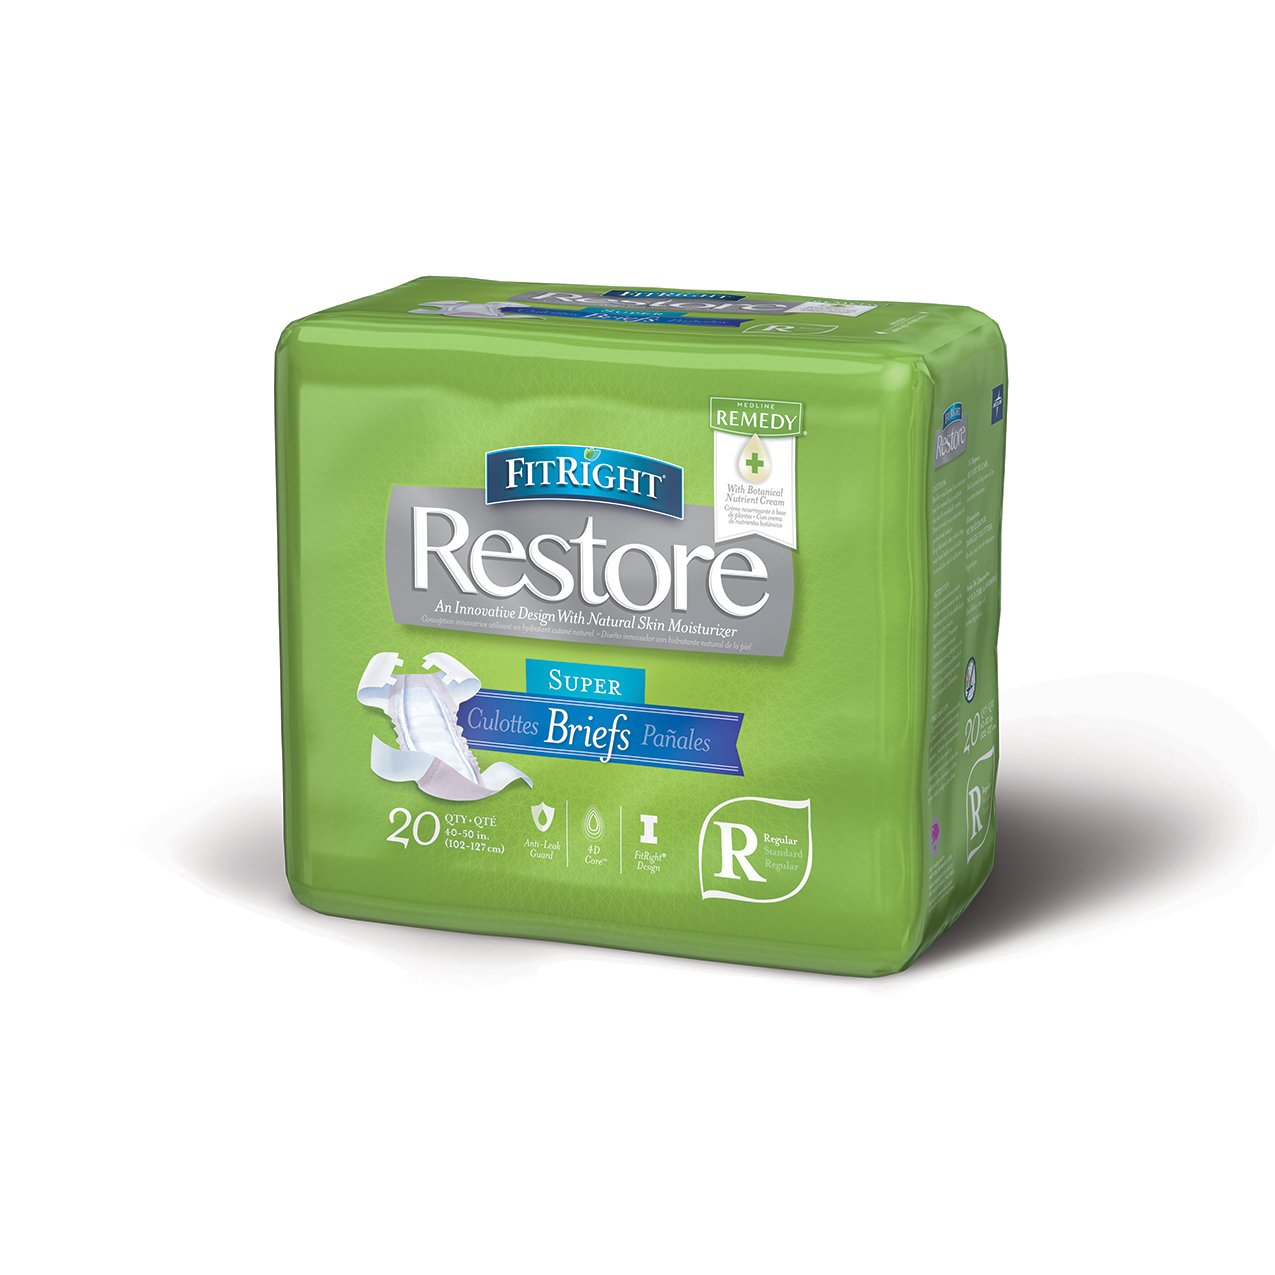 Medline - ERROR:#N/A FitRight Restore Adult Briefs with Tabs, Maximum Absorbency, Regular, 40-50, For Adult Incontinence, Comfort and Skin Health, 4 packs of 20 (80 total)